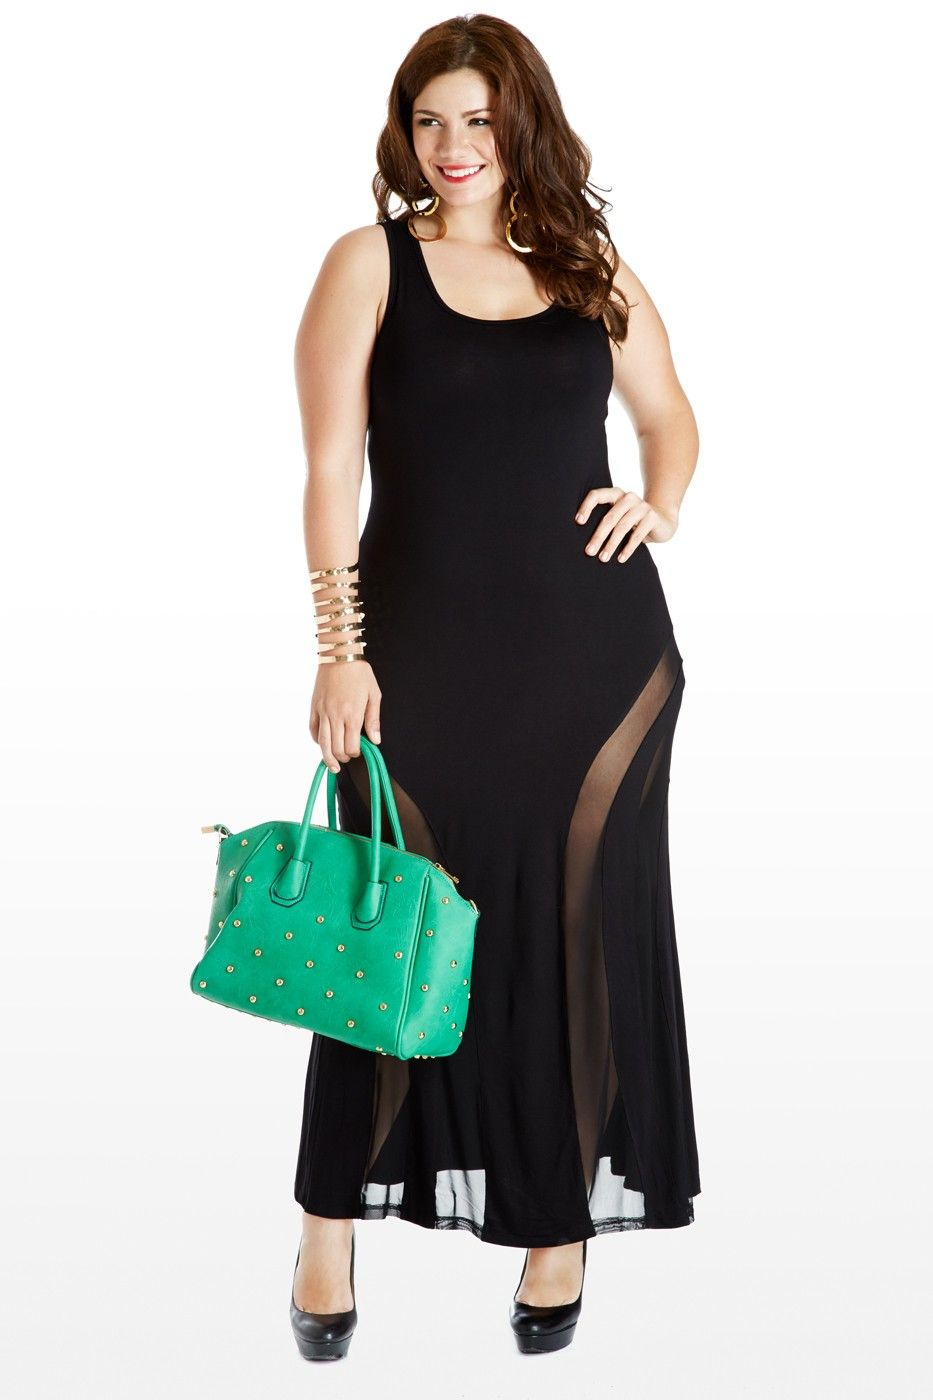 Every Minute Every Hourglass Plus Size Mesh Maxi Dress